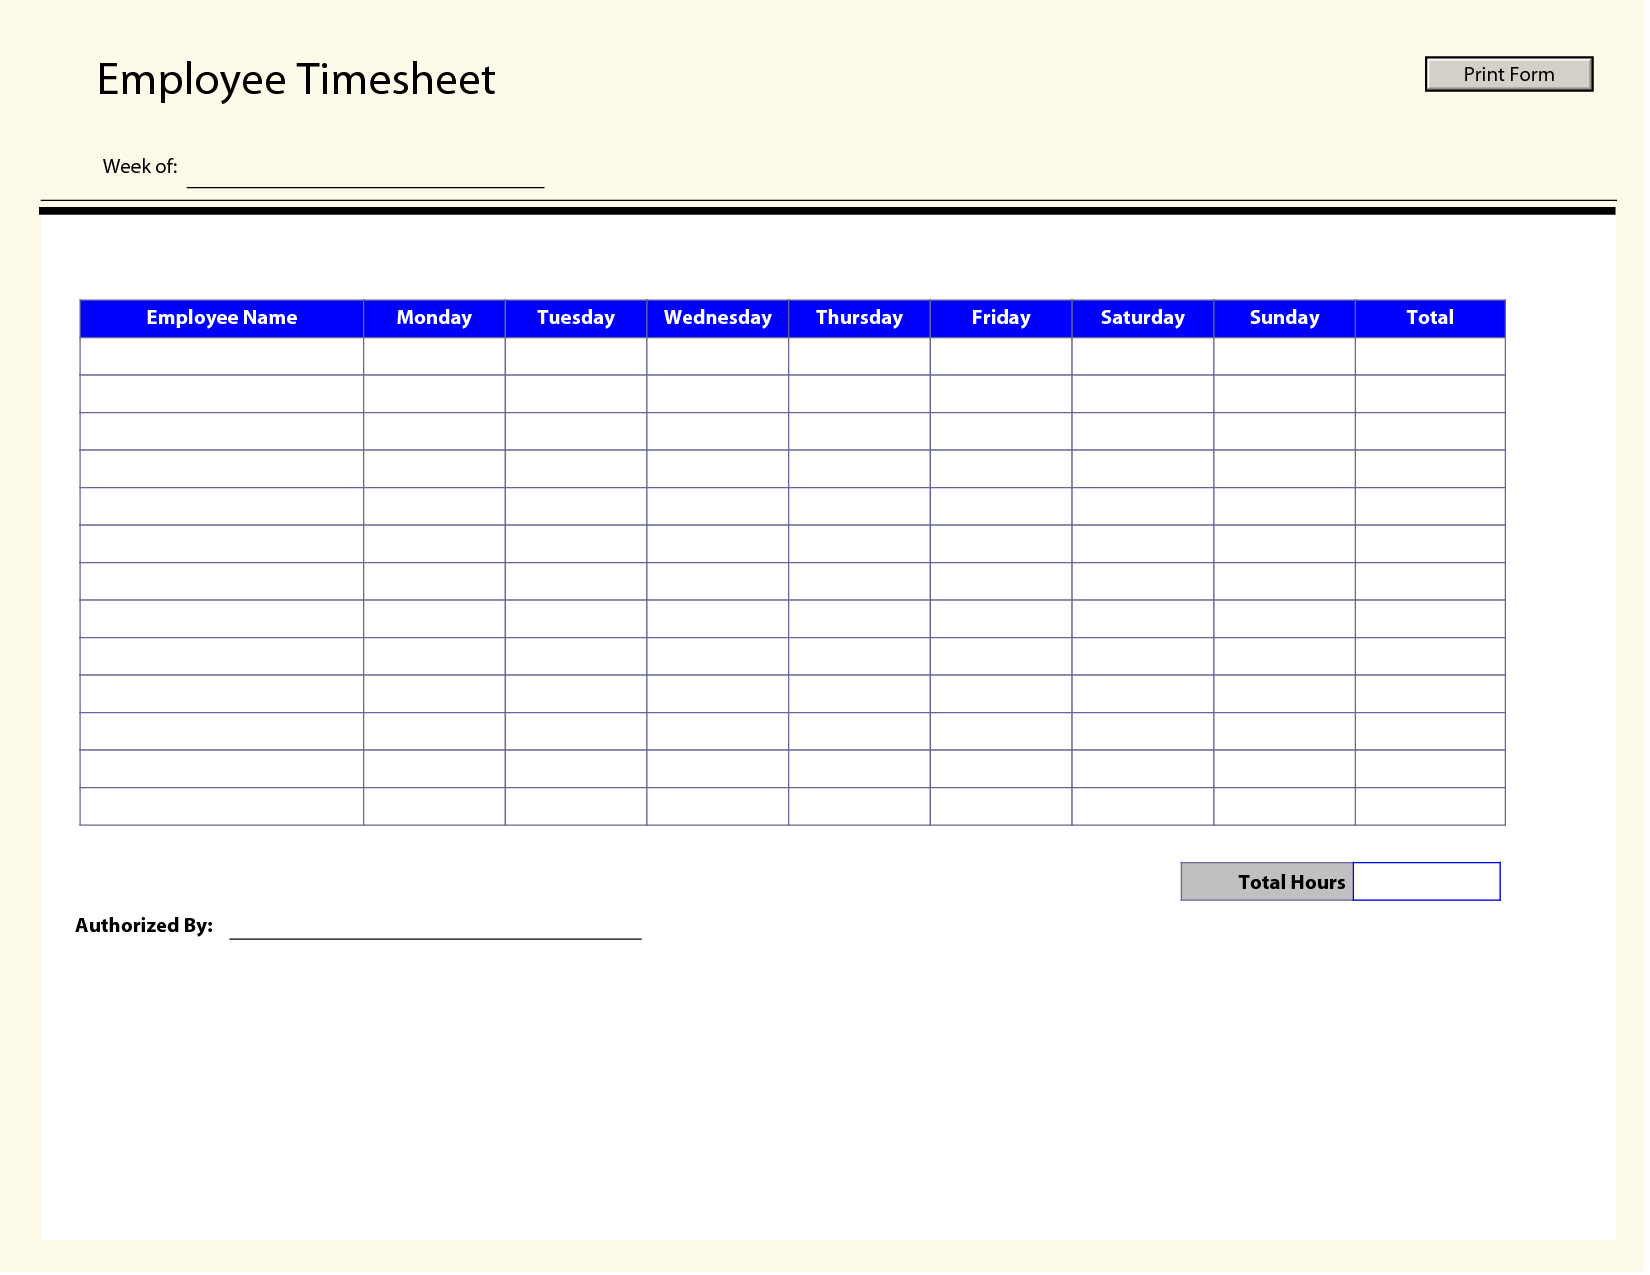 Printable Time Sheets | Free Printable Employee Timesheets Employee - Free Printable Blank Time Sheets